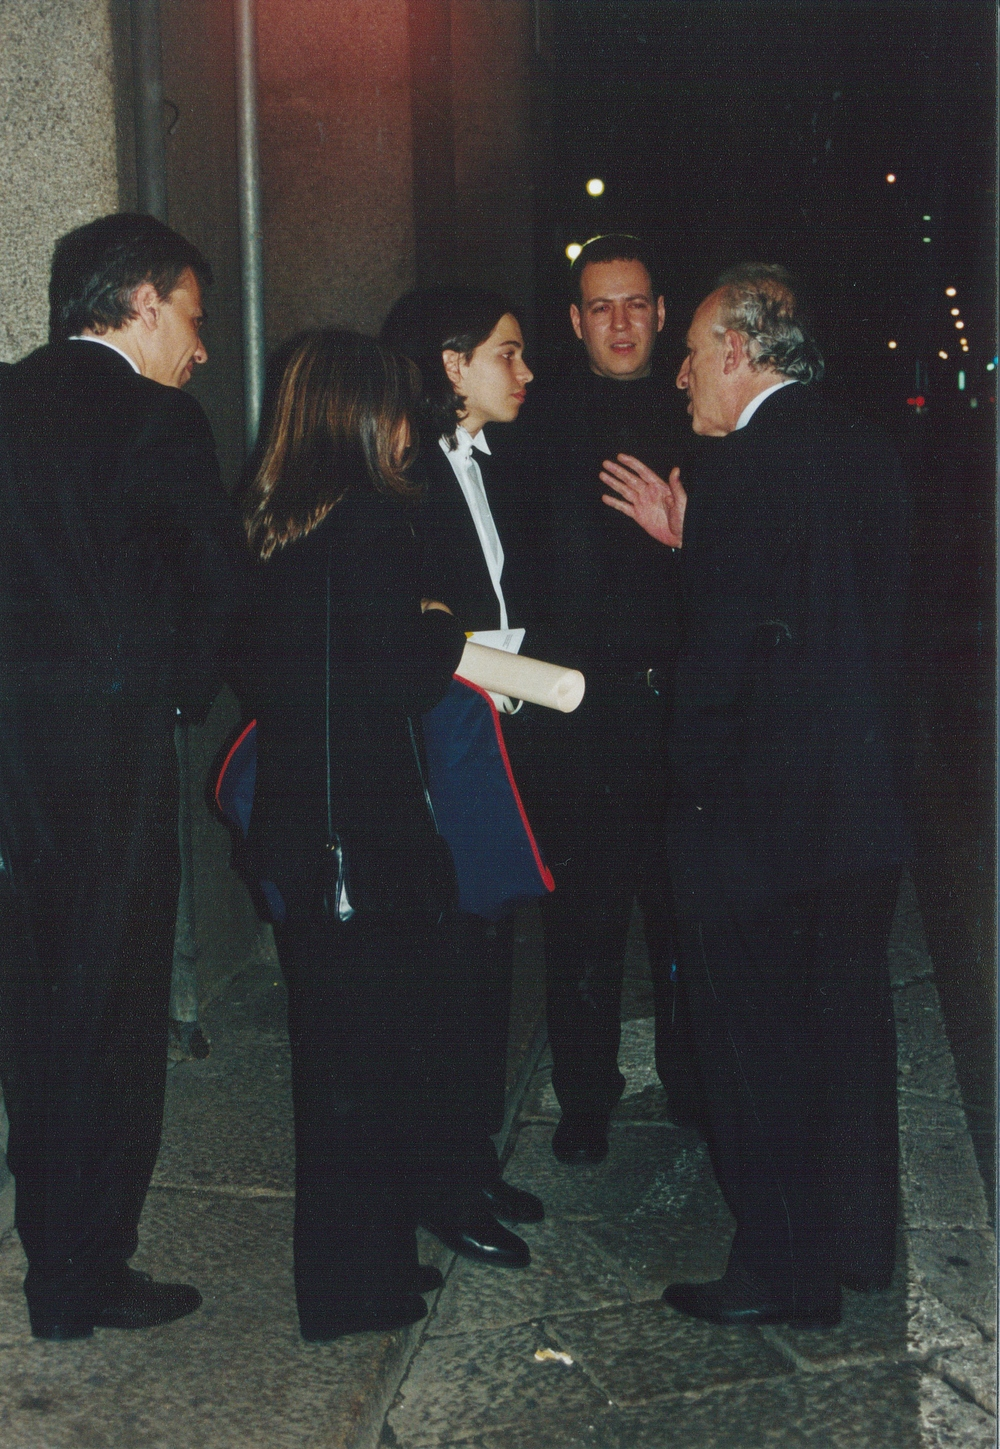 With Maurizio Pollini and Horacio Lavandera, Milan 2001